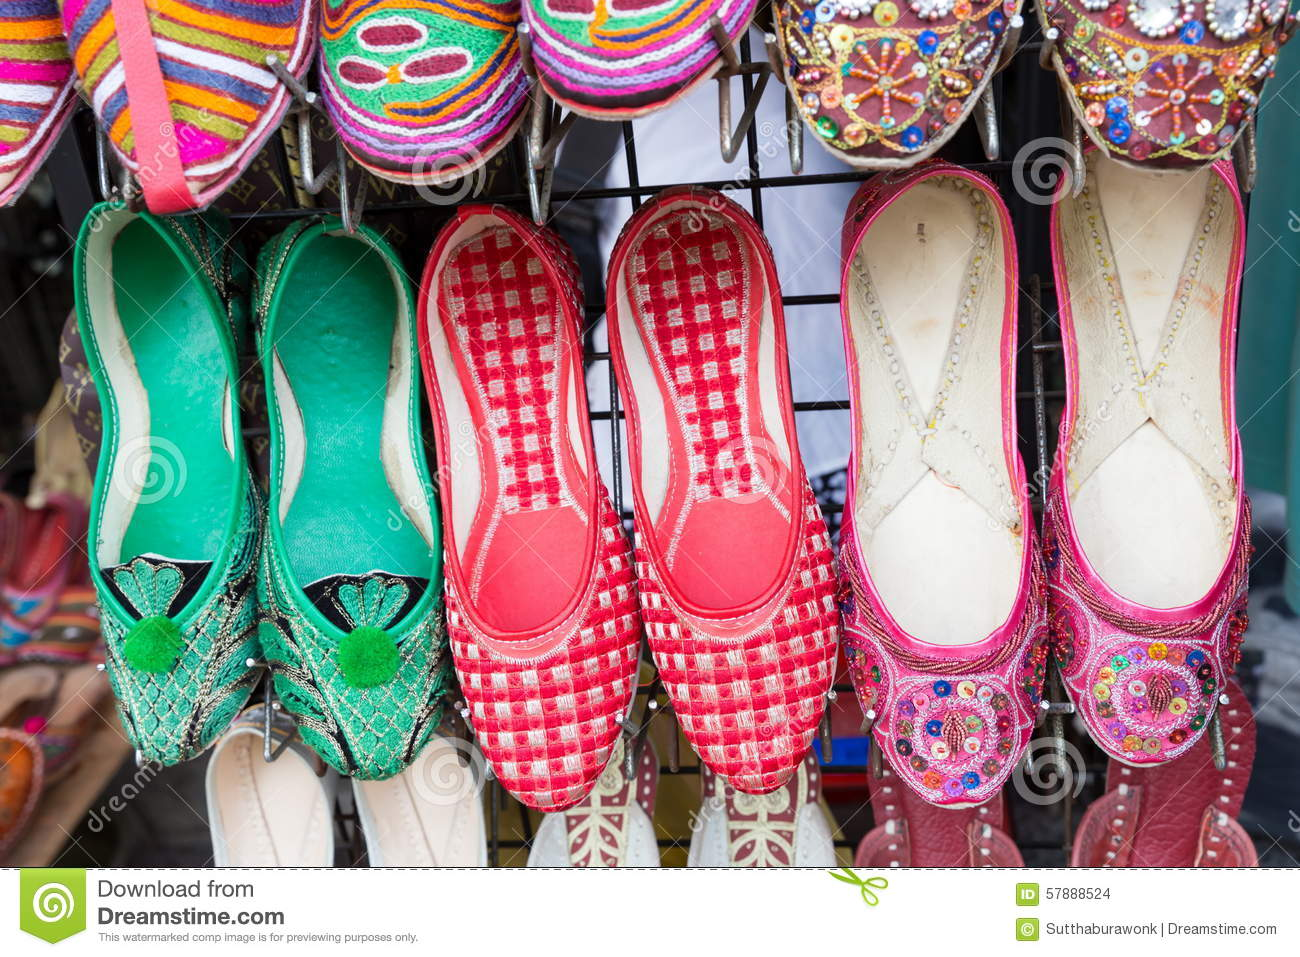 Women's Shoes For Sale. Stock Photo - Image: 57888524